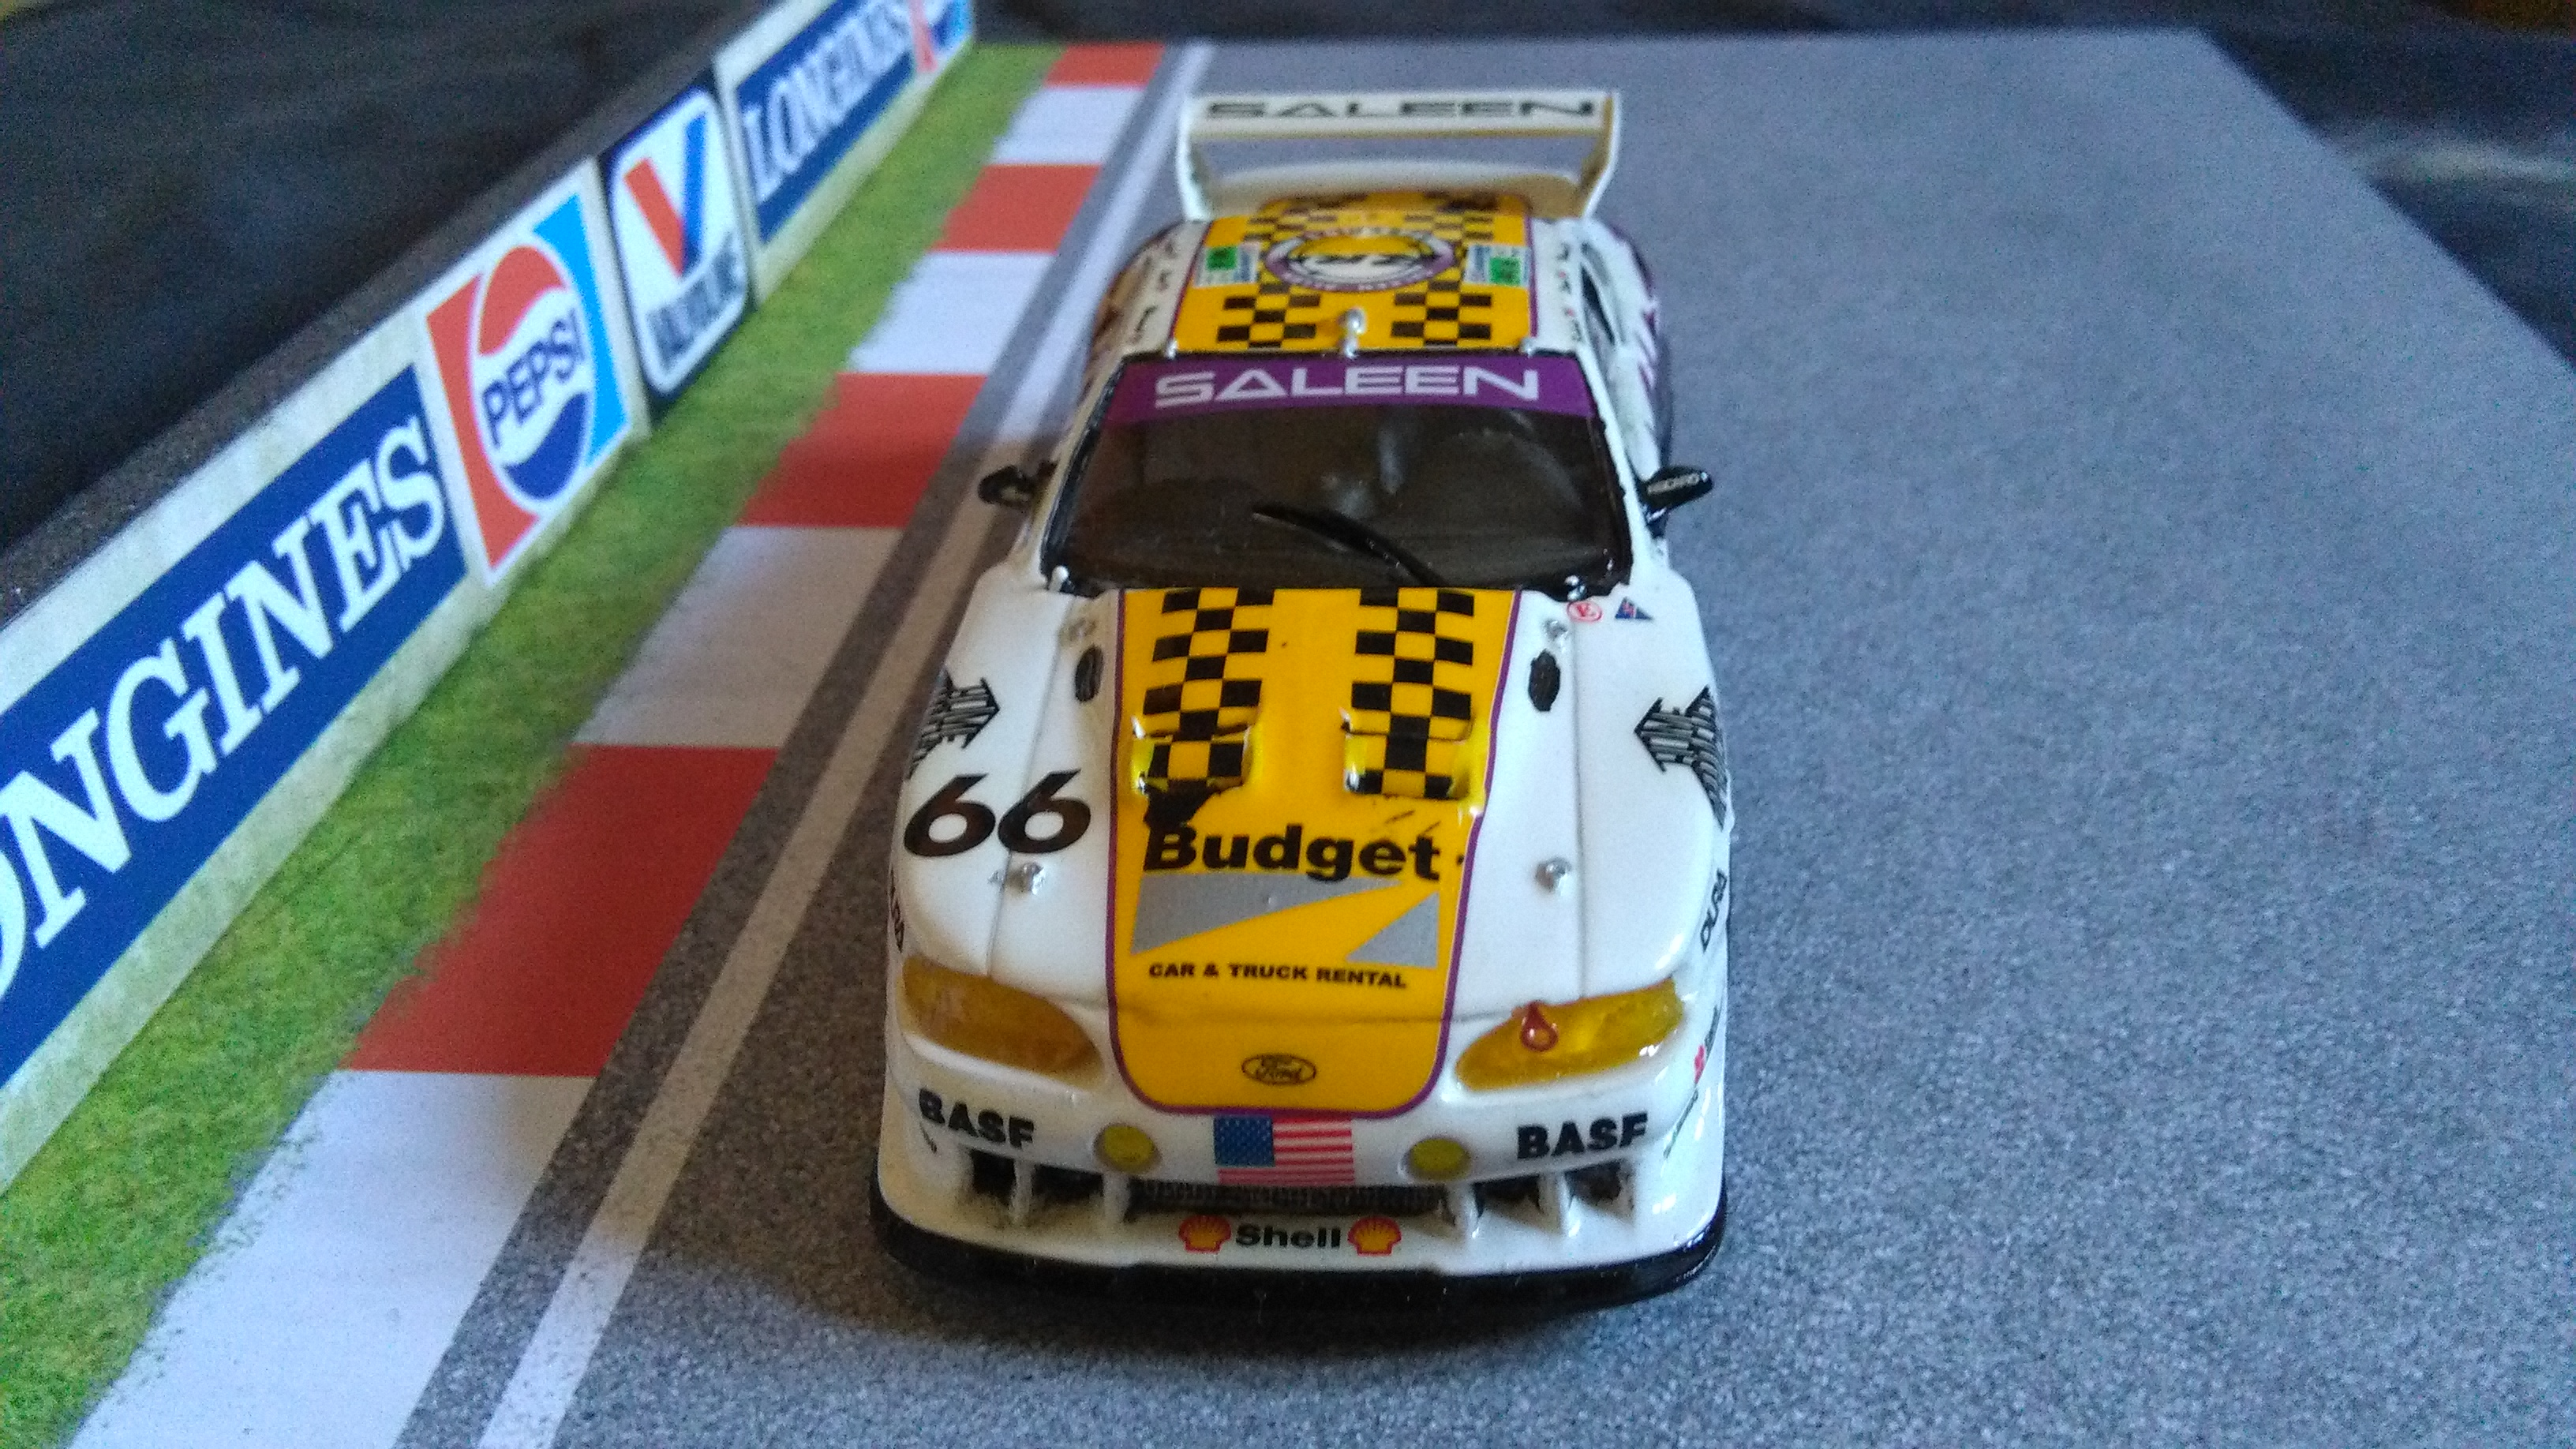 Mustang Saleen Le Mans 1997 #66 (not me) 443103IMG20170713190130